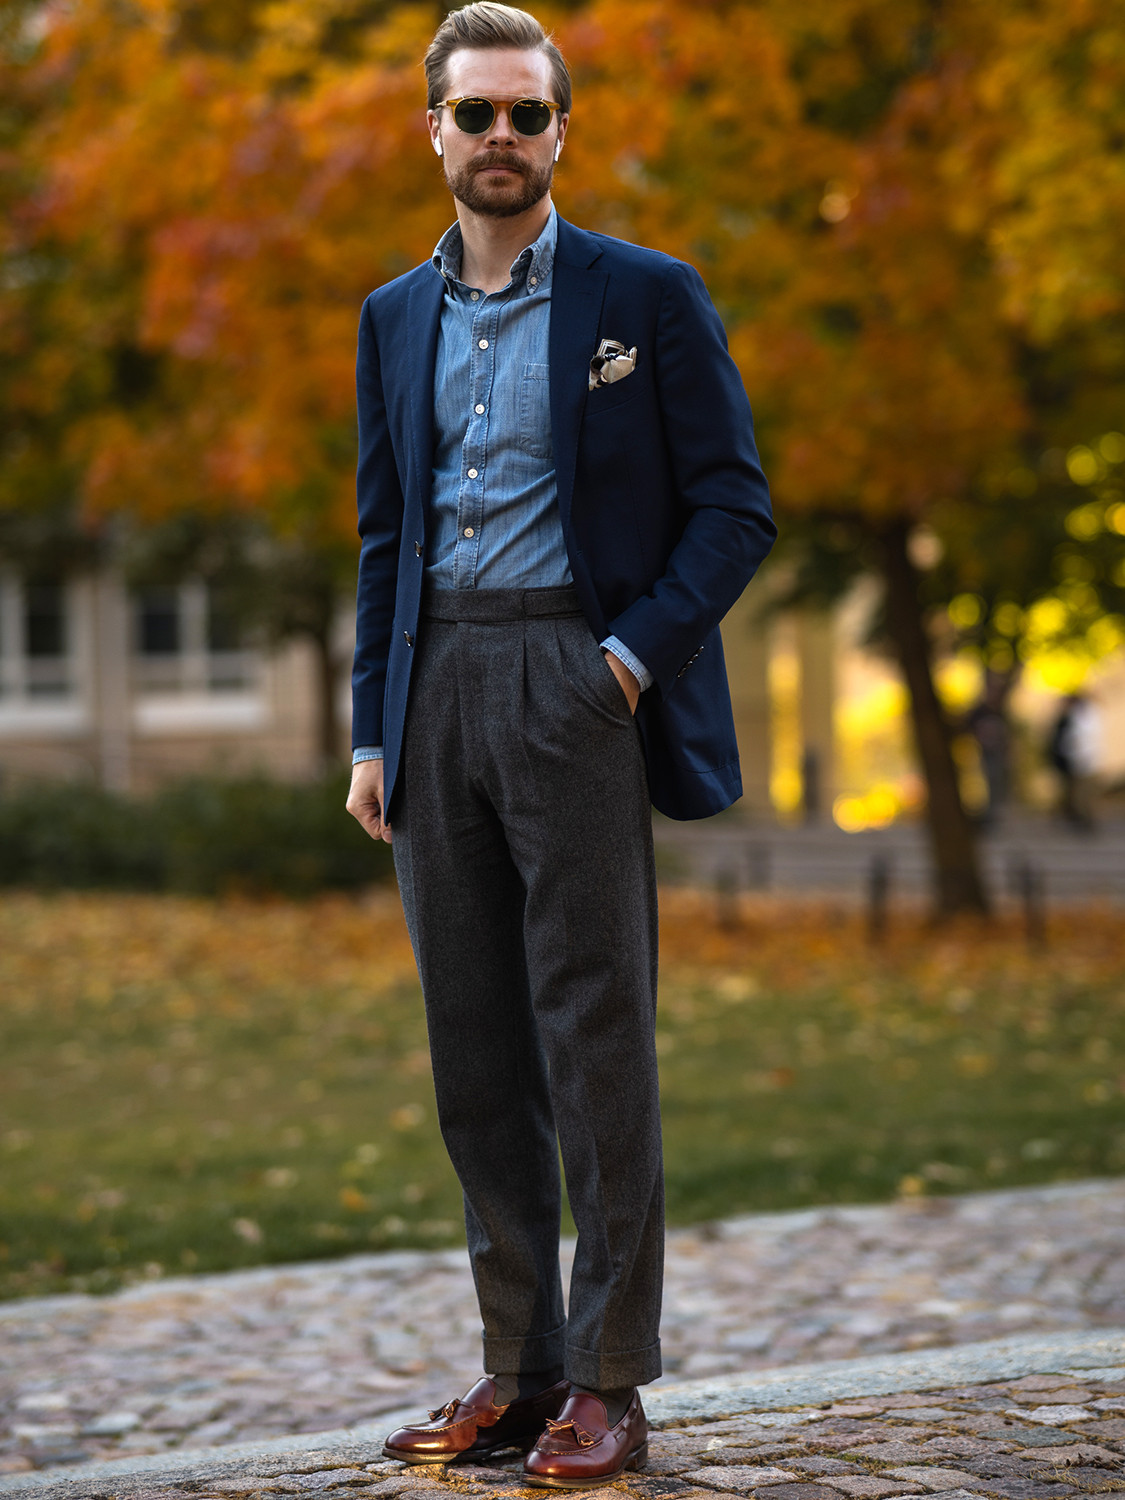 Men's outfit idea for 2021 with navy plain blazer, blue denim shirt, grey plain formal trousers, loafers. Suitable for spring and autumn.